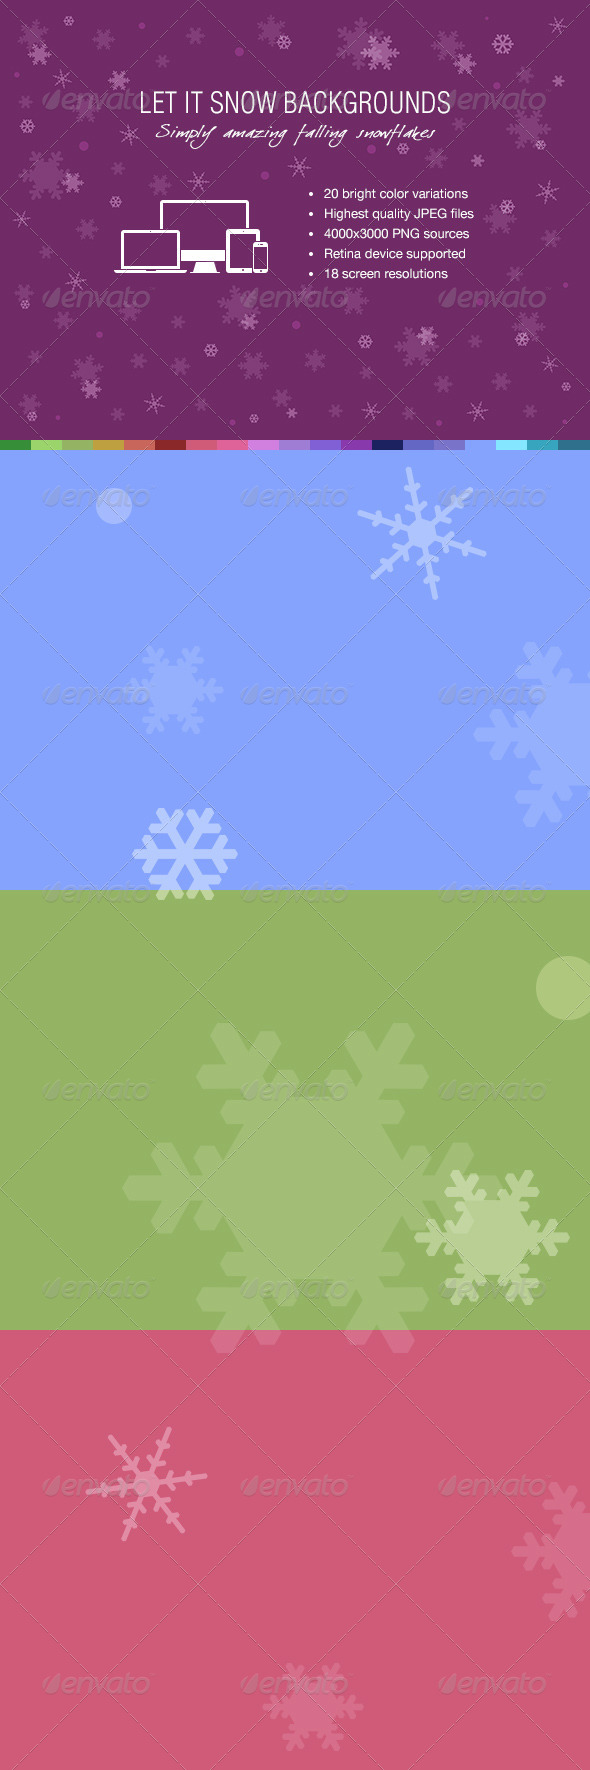 Let It Snow Backgrounds - Backgrounds Graphics